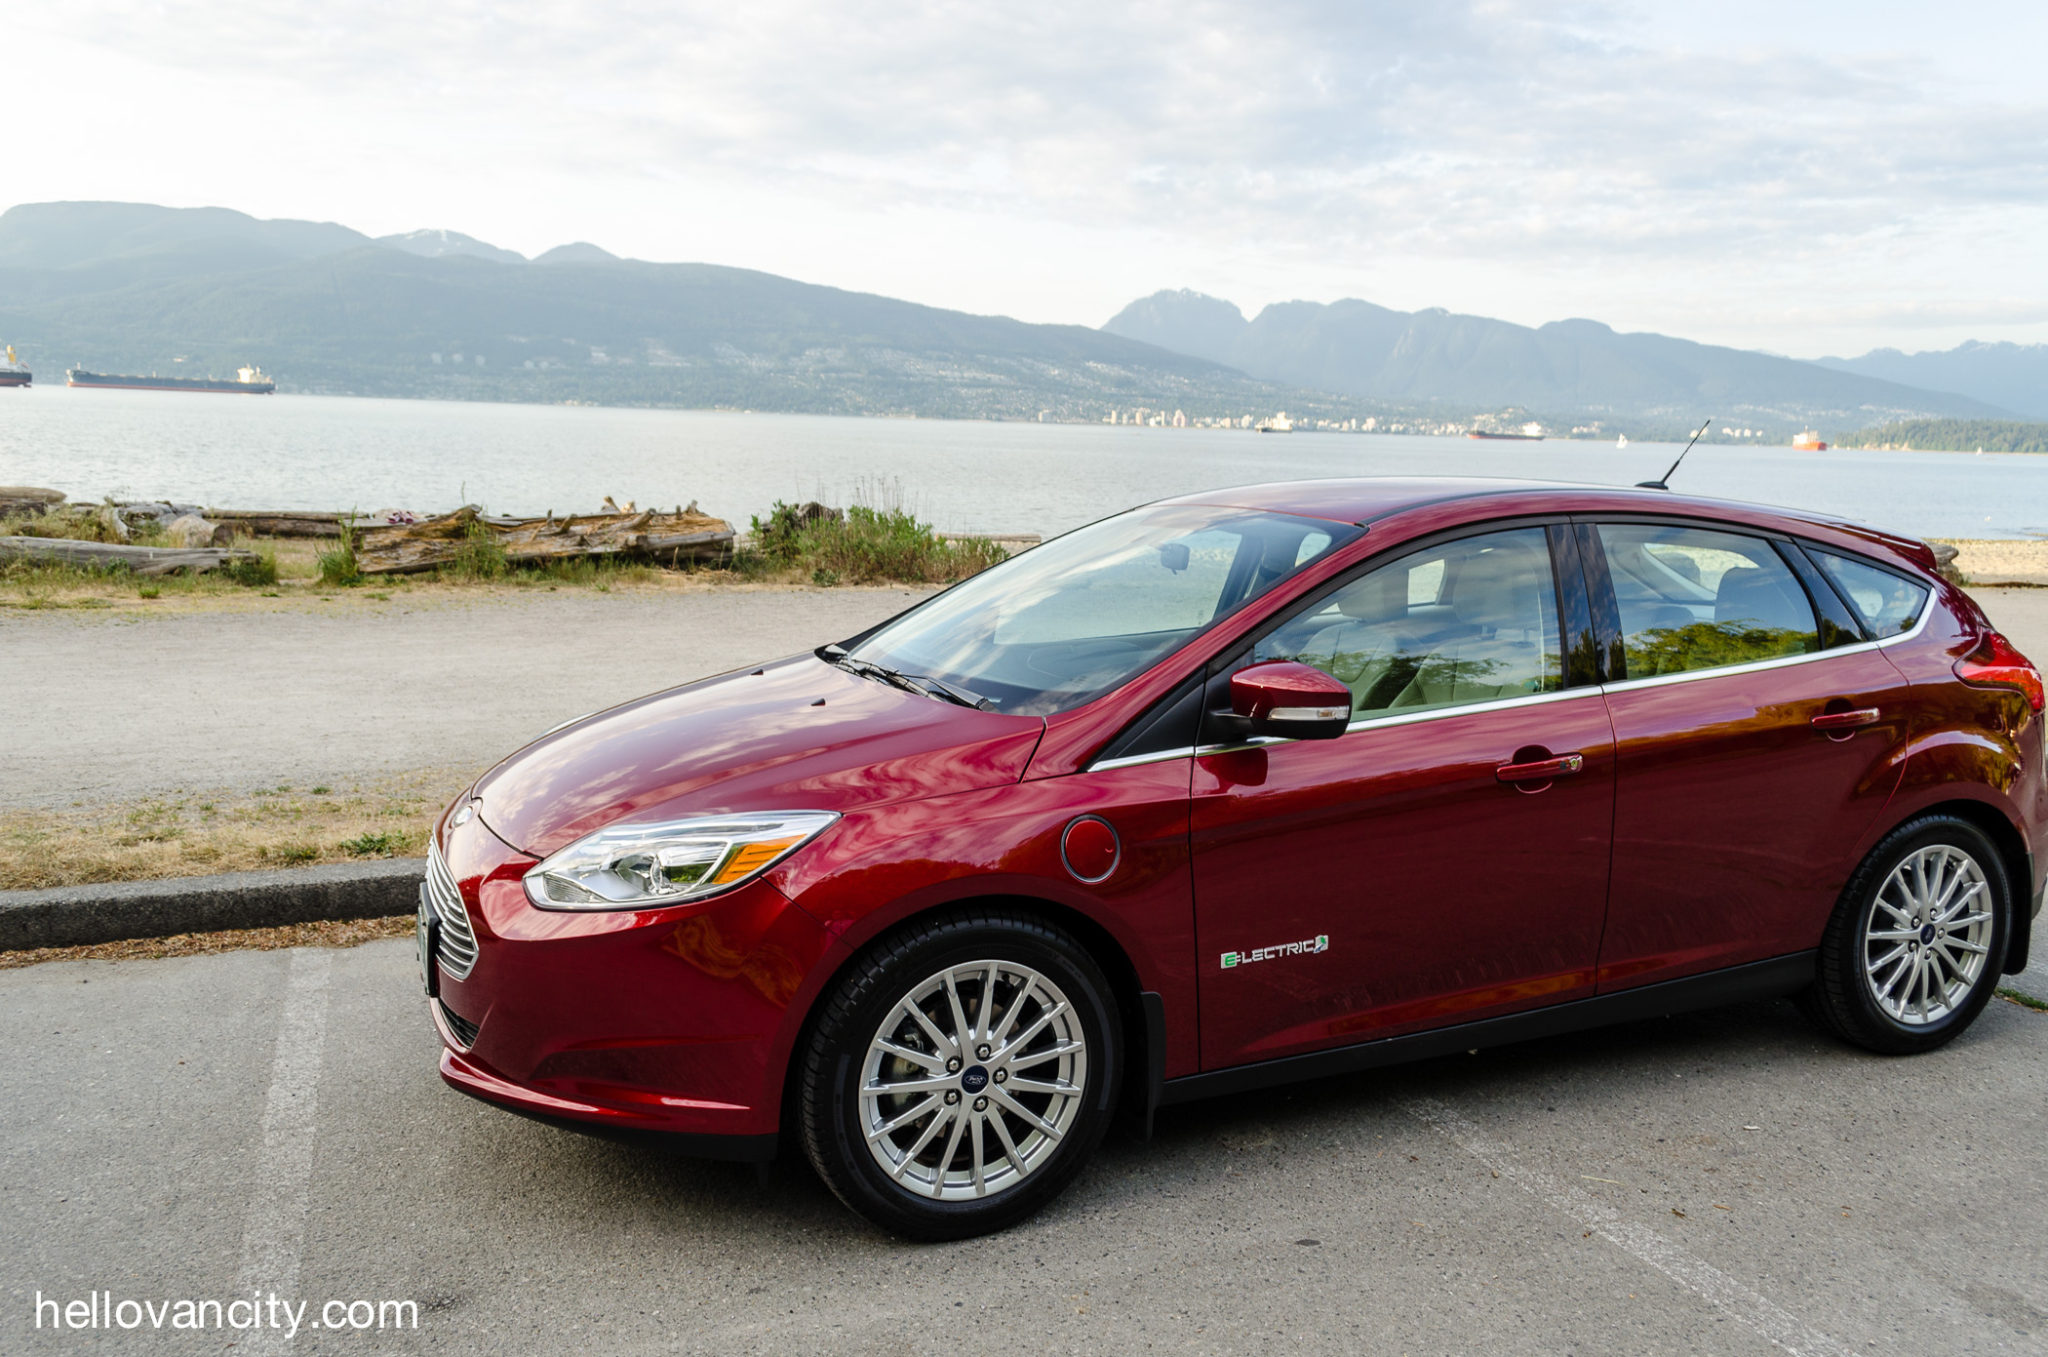 review 2016 ford focus electric hello vancity. Black Bedroom Furniture Sets. Home Design Ideas